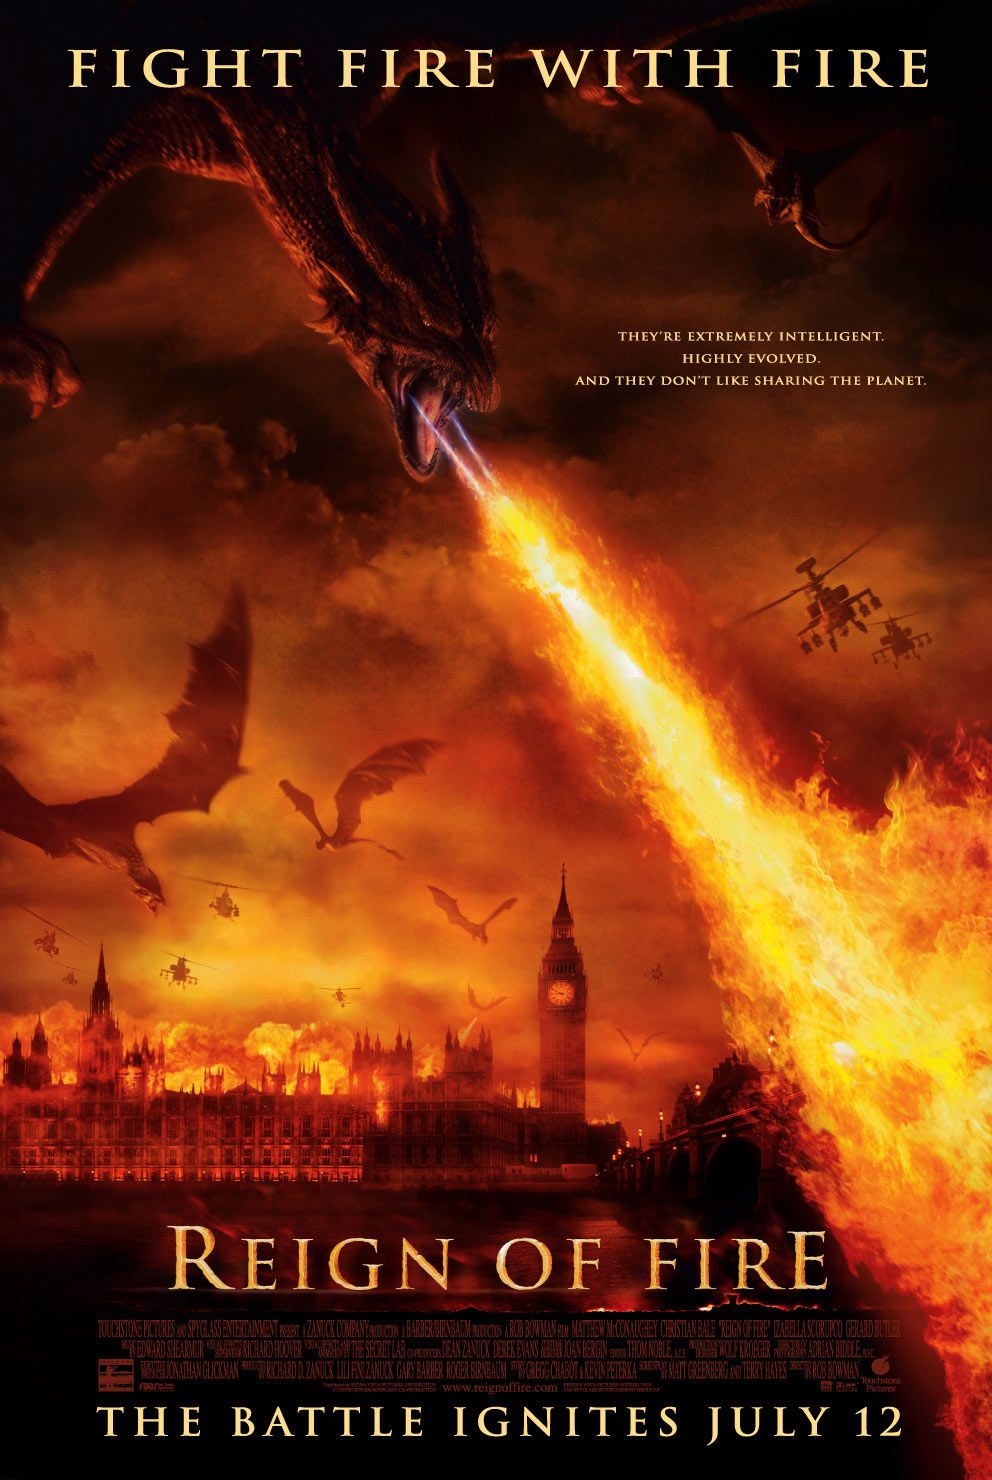 MONSTRŲ ATAKA (2002) / REIGN OF FIRE